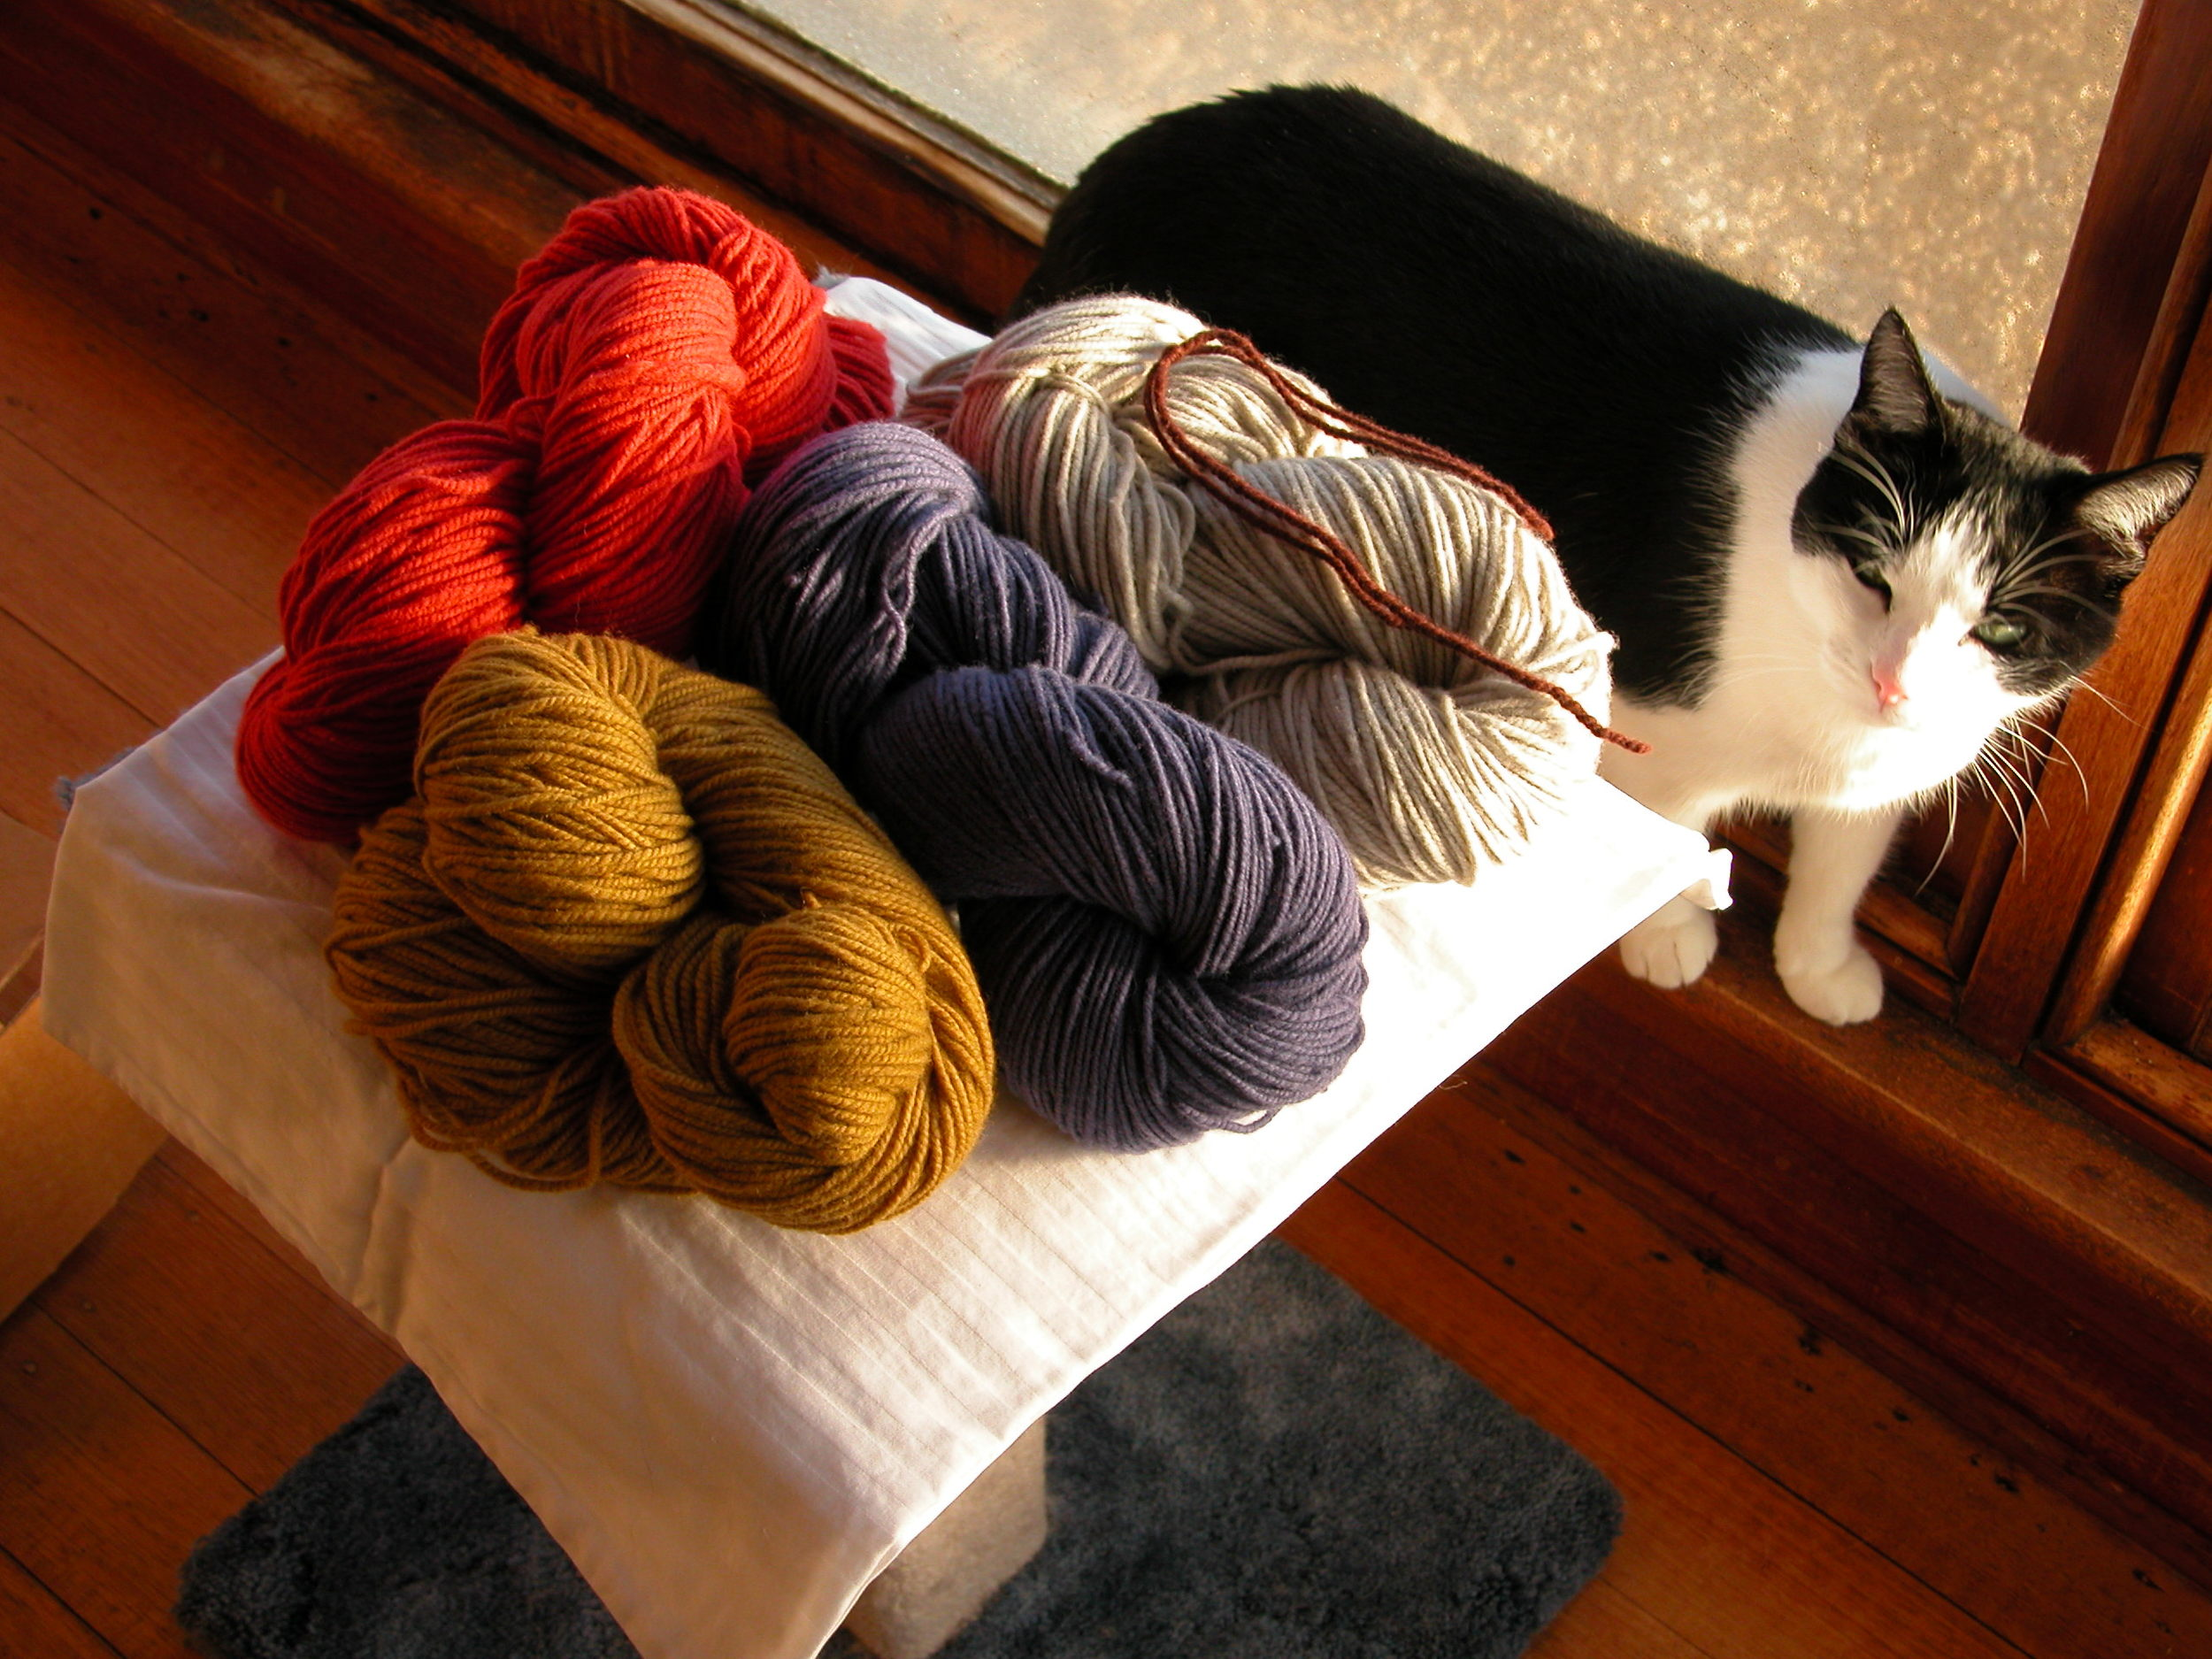 Skye kitty and the very first dye lot of yarn.